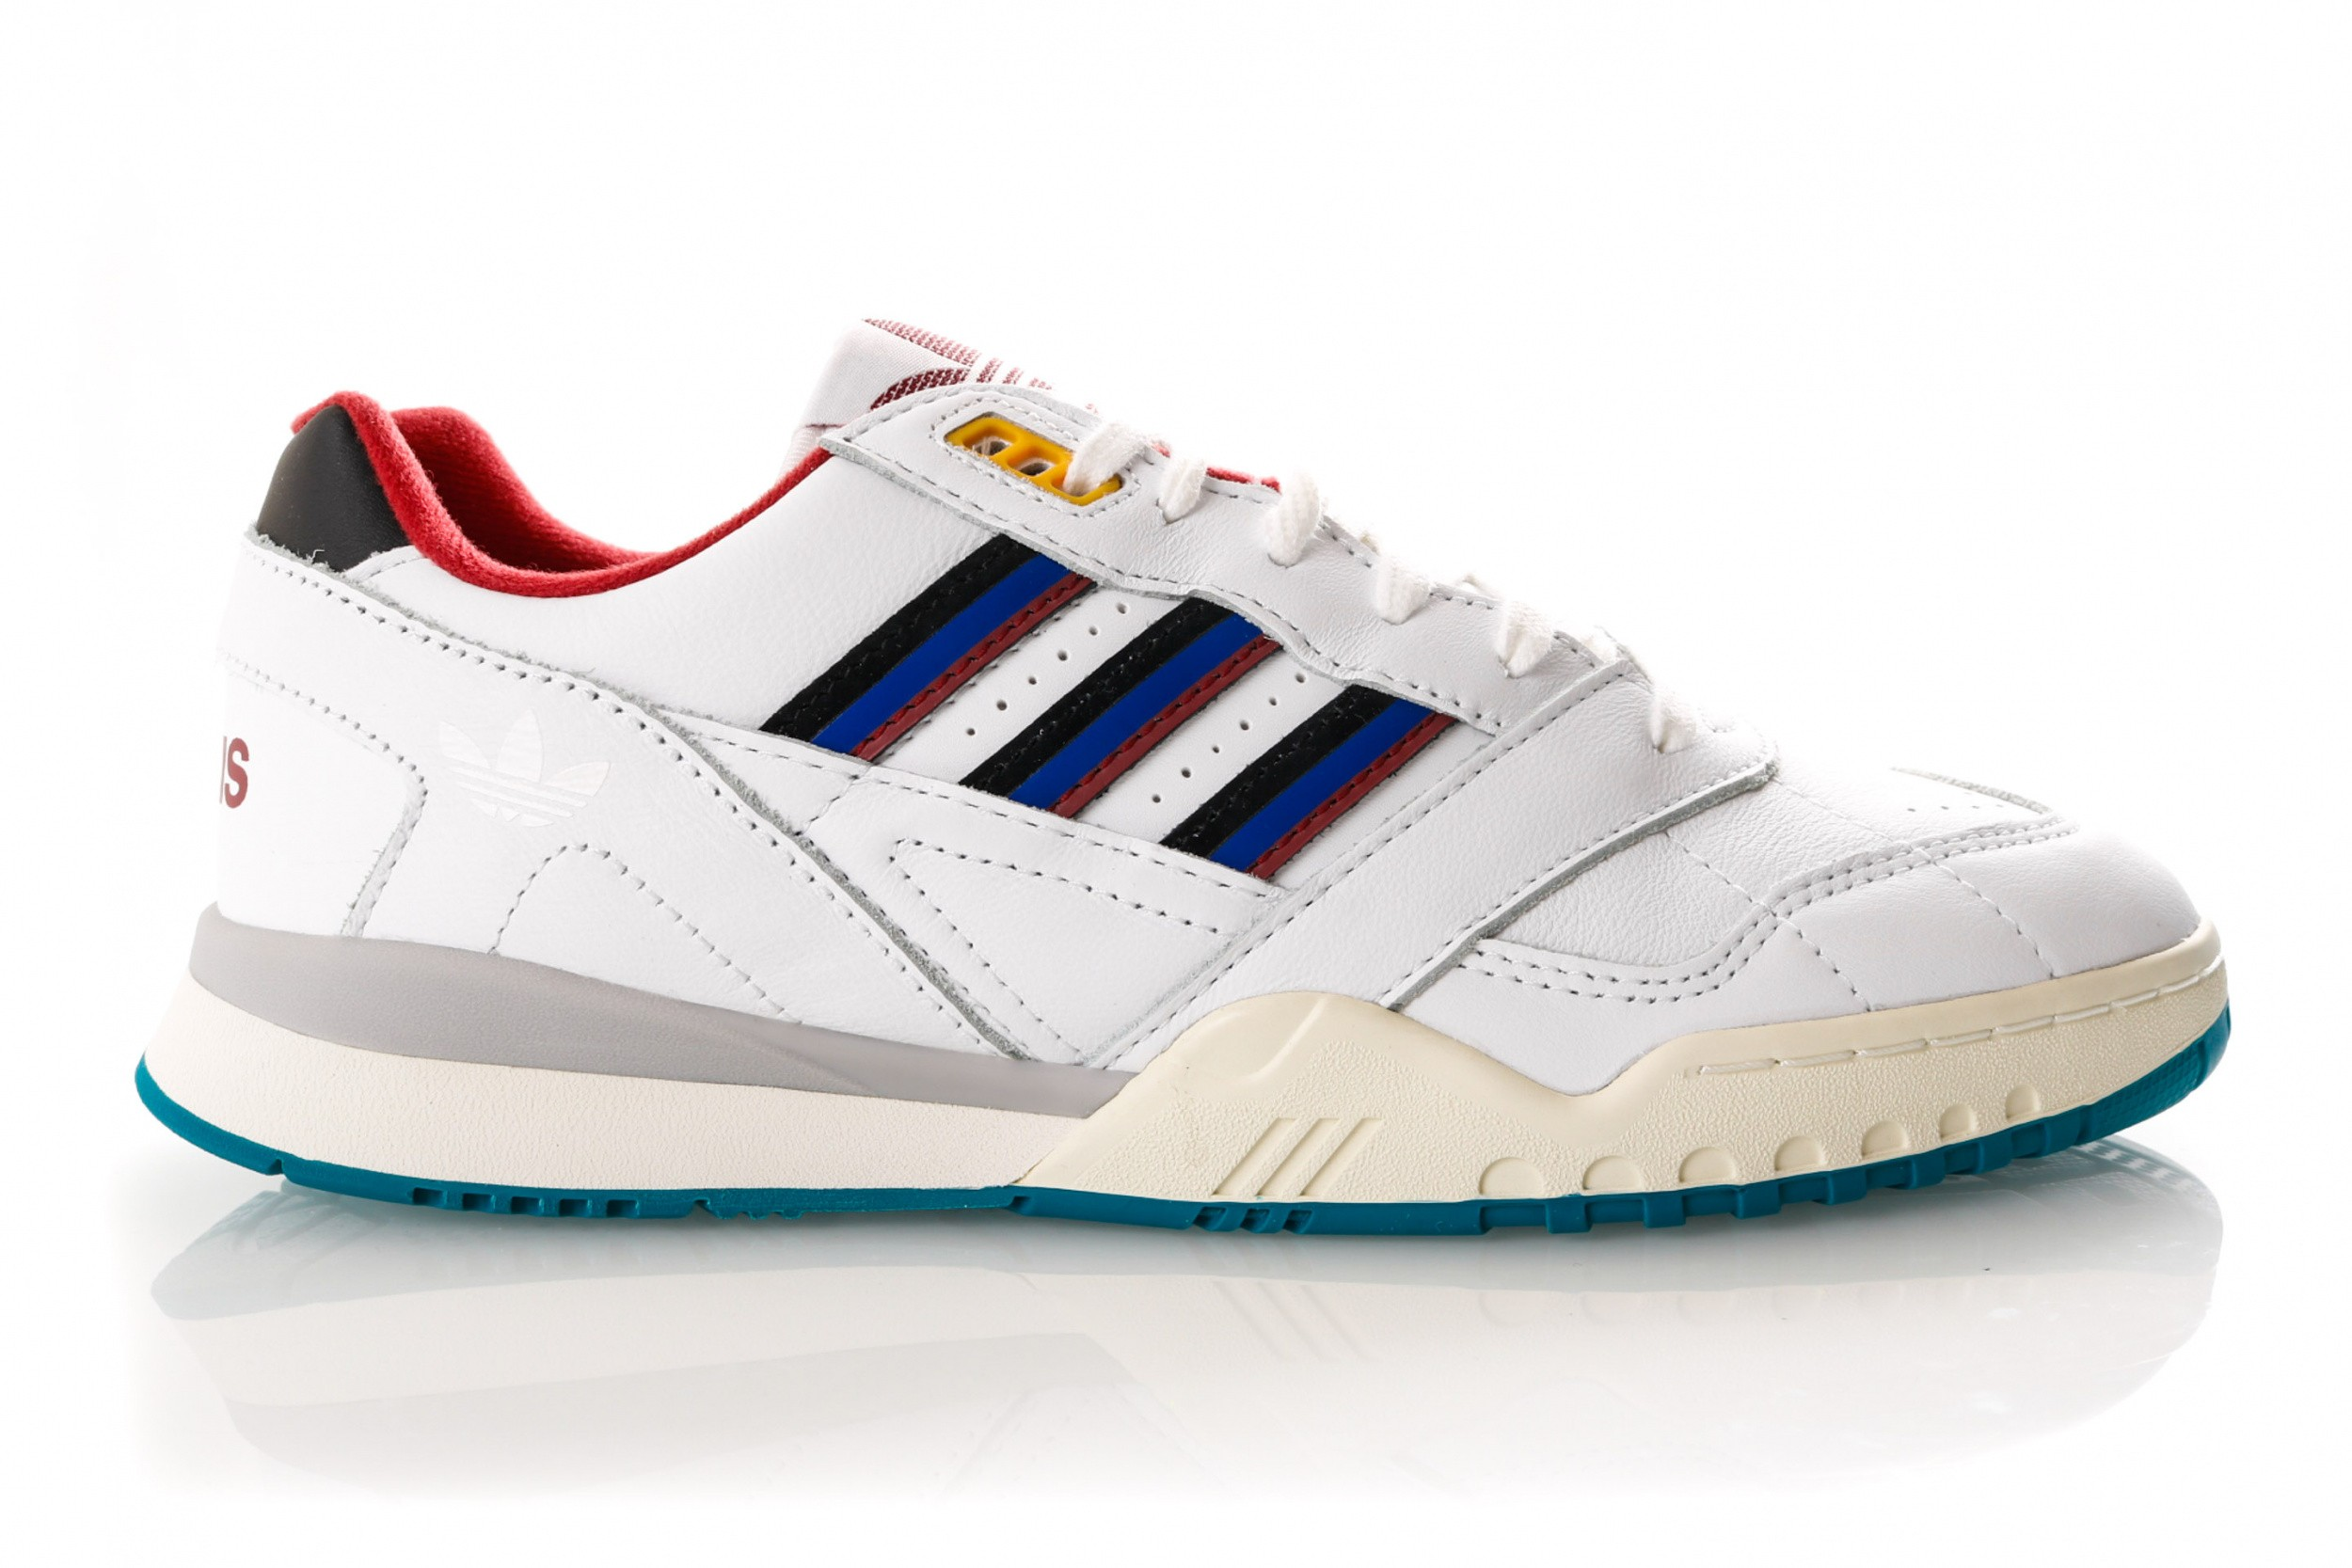 3137fb5a241 Adidas A.R. Trainer EE5397 Sneakers Ftwr White/Collegiate  Burgundy/Collegiate Royal